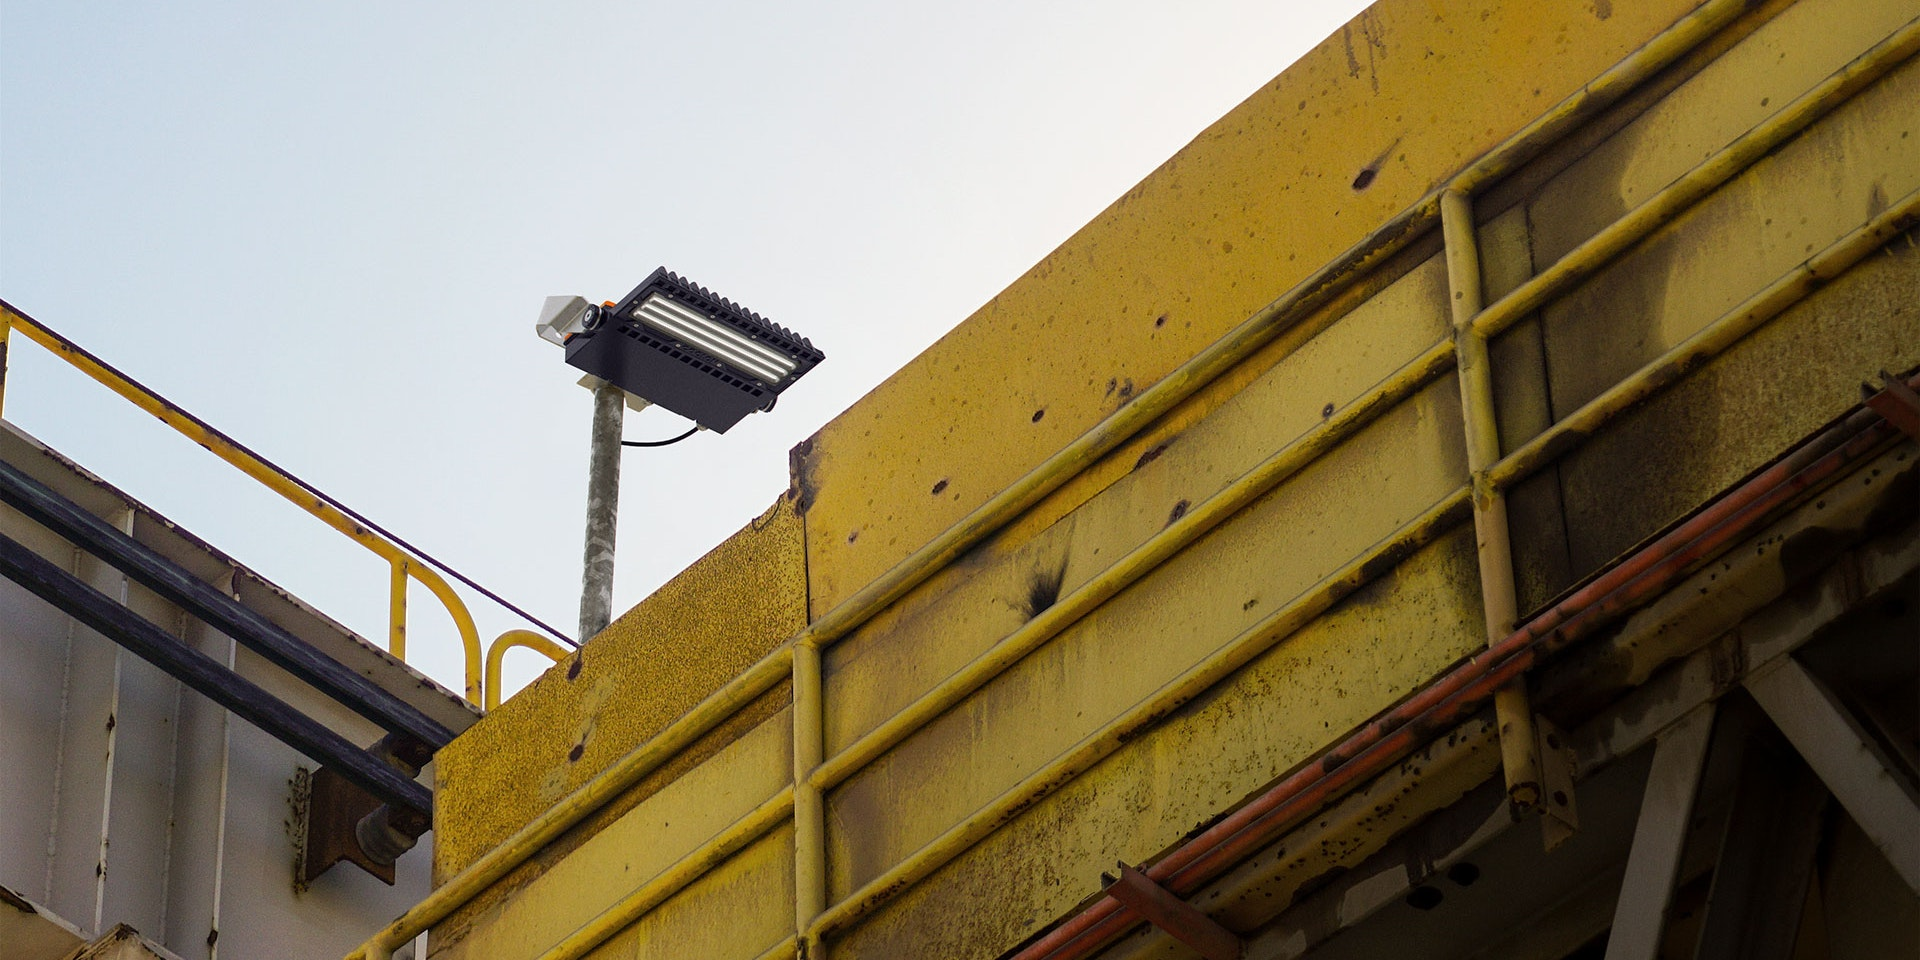 Butch LED Floodlight in application, installed on a mining/industrial site